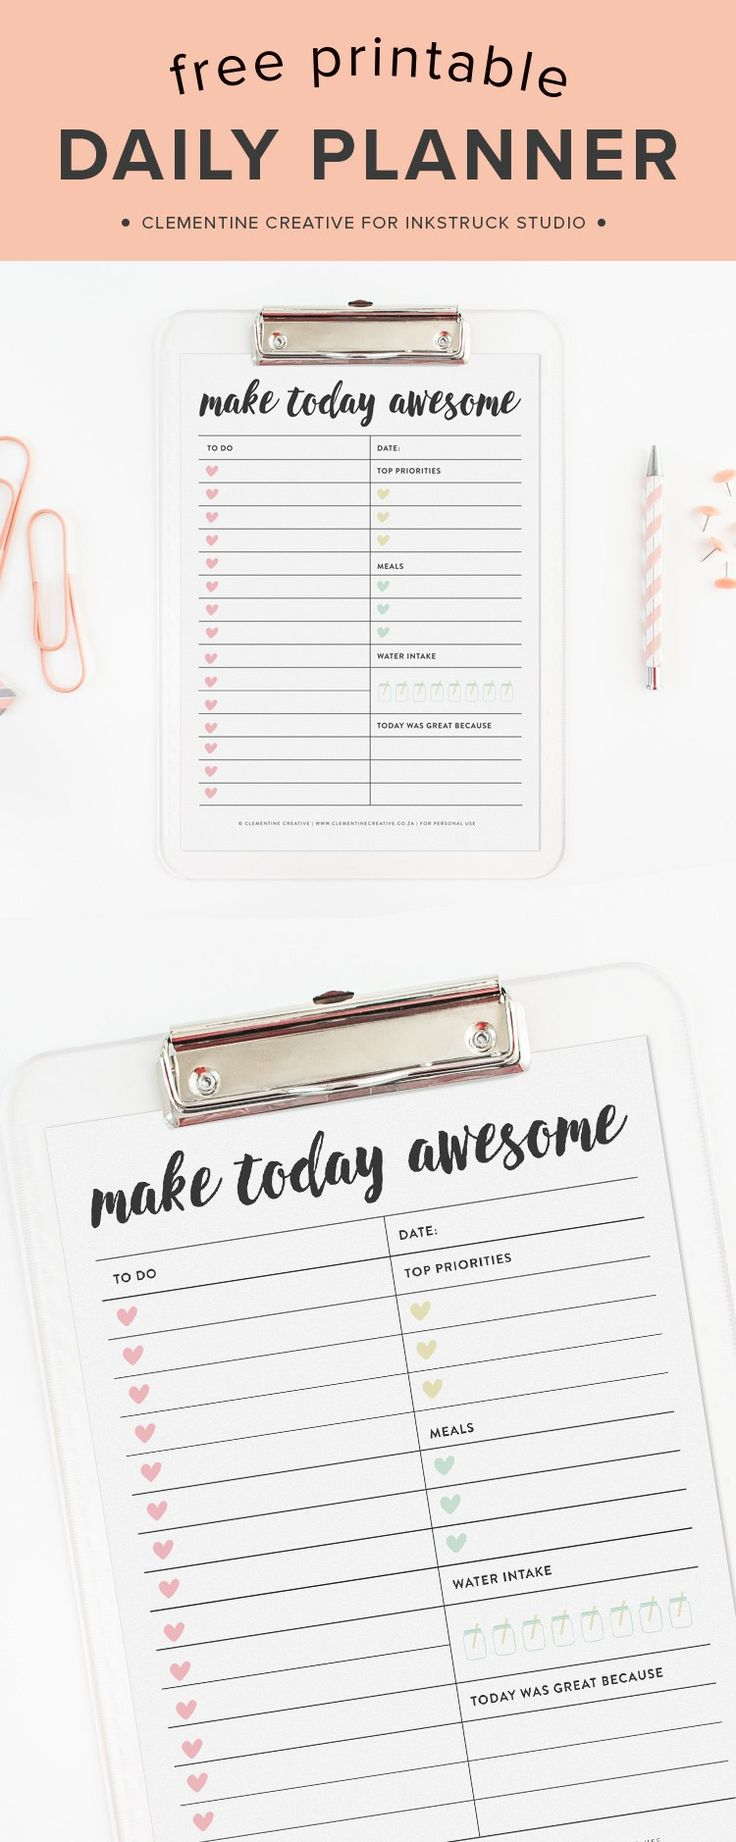 Ever feel like the day is in charge of you? Set that right by using this free printable daily planner to plan your day!                                                                                                                                                                                 More